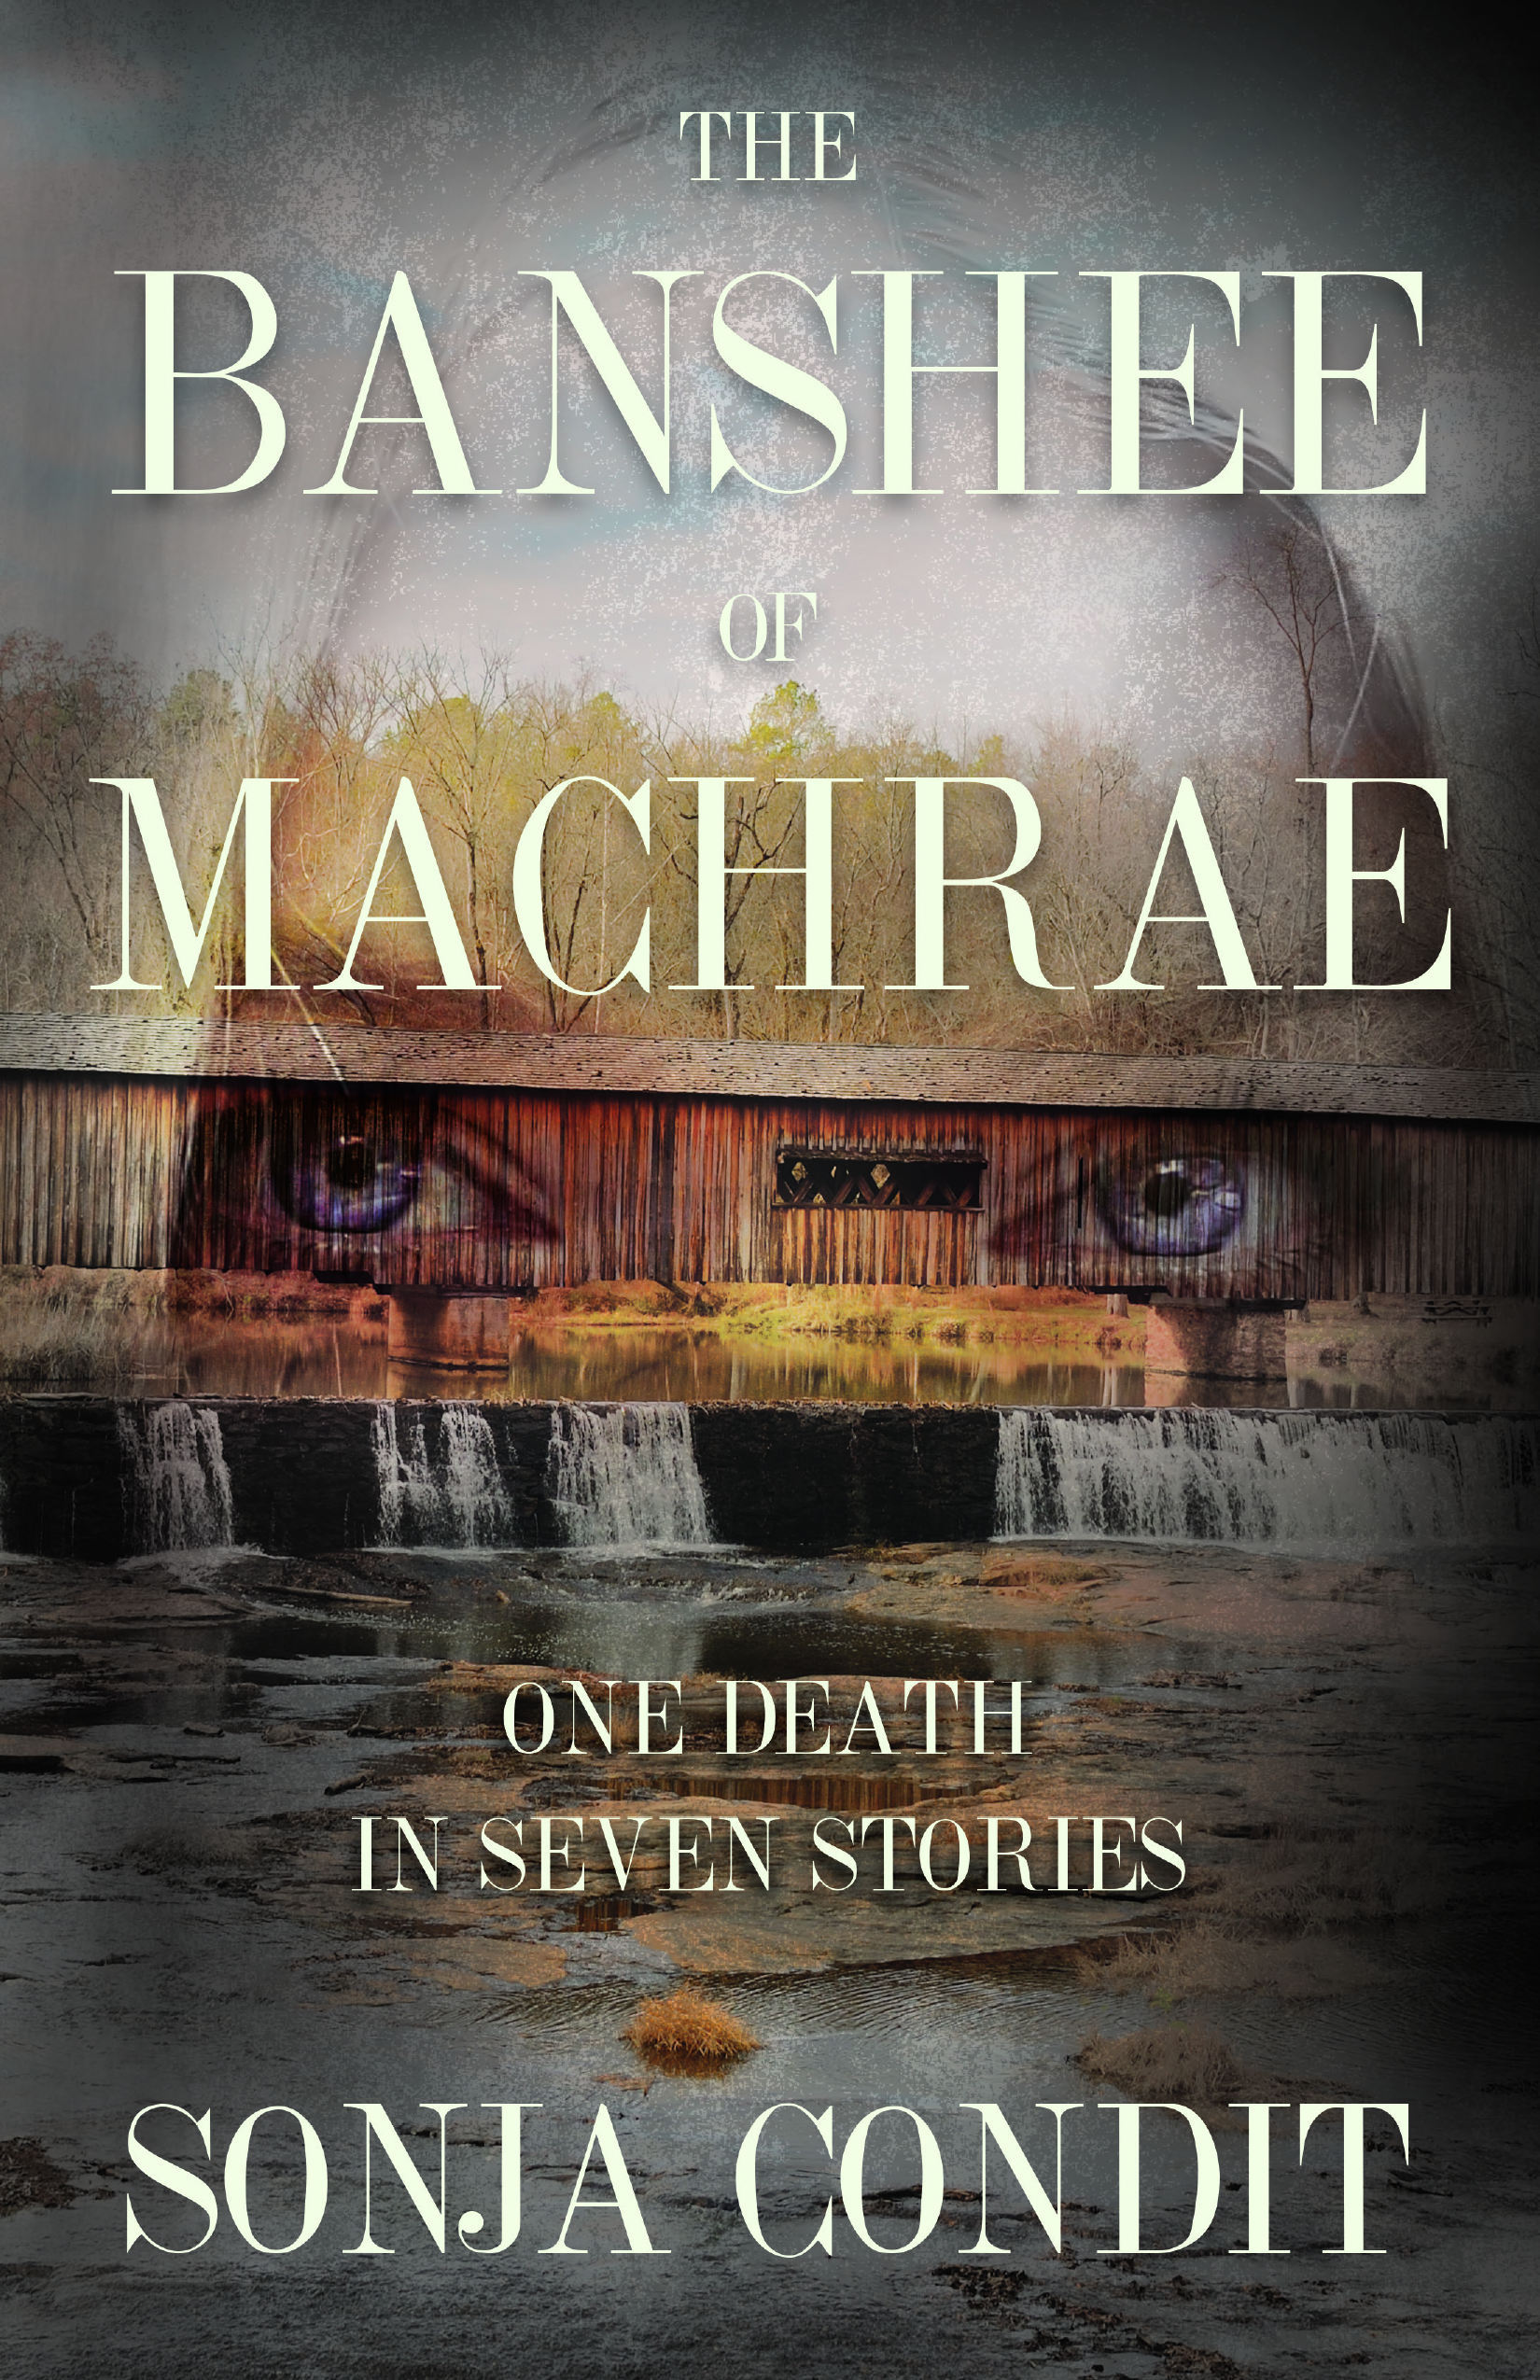 The Banshee of Macrae by Sonja Condit (SFK Press, fall 2018)